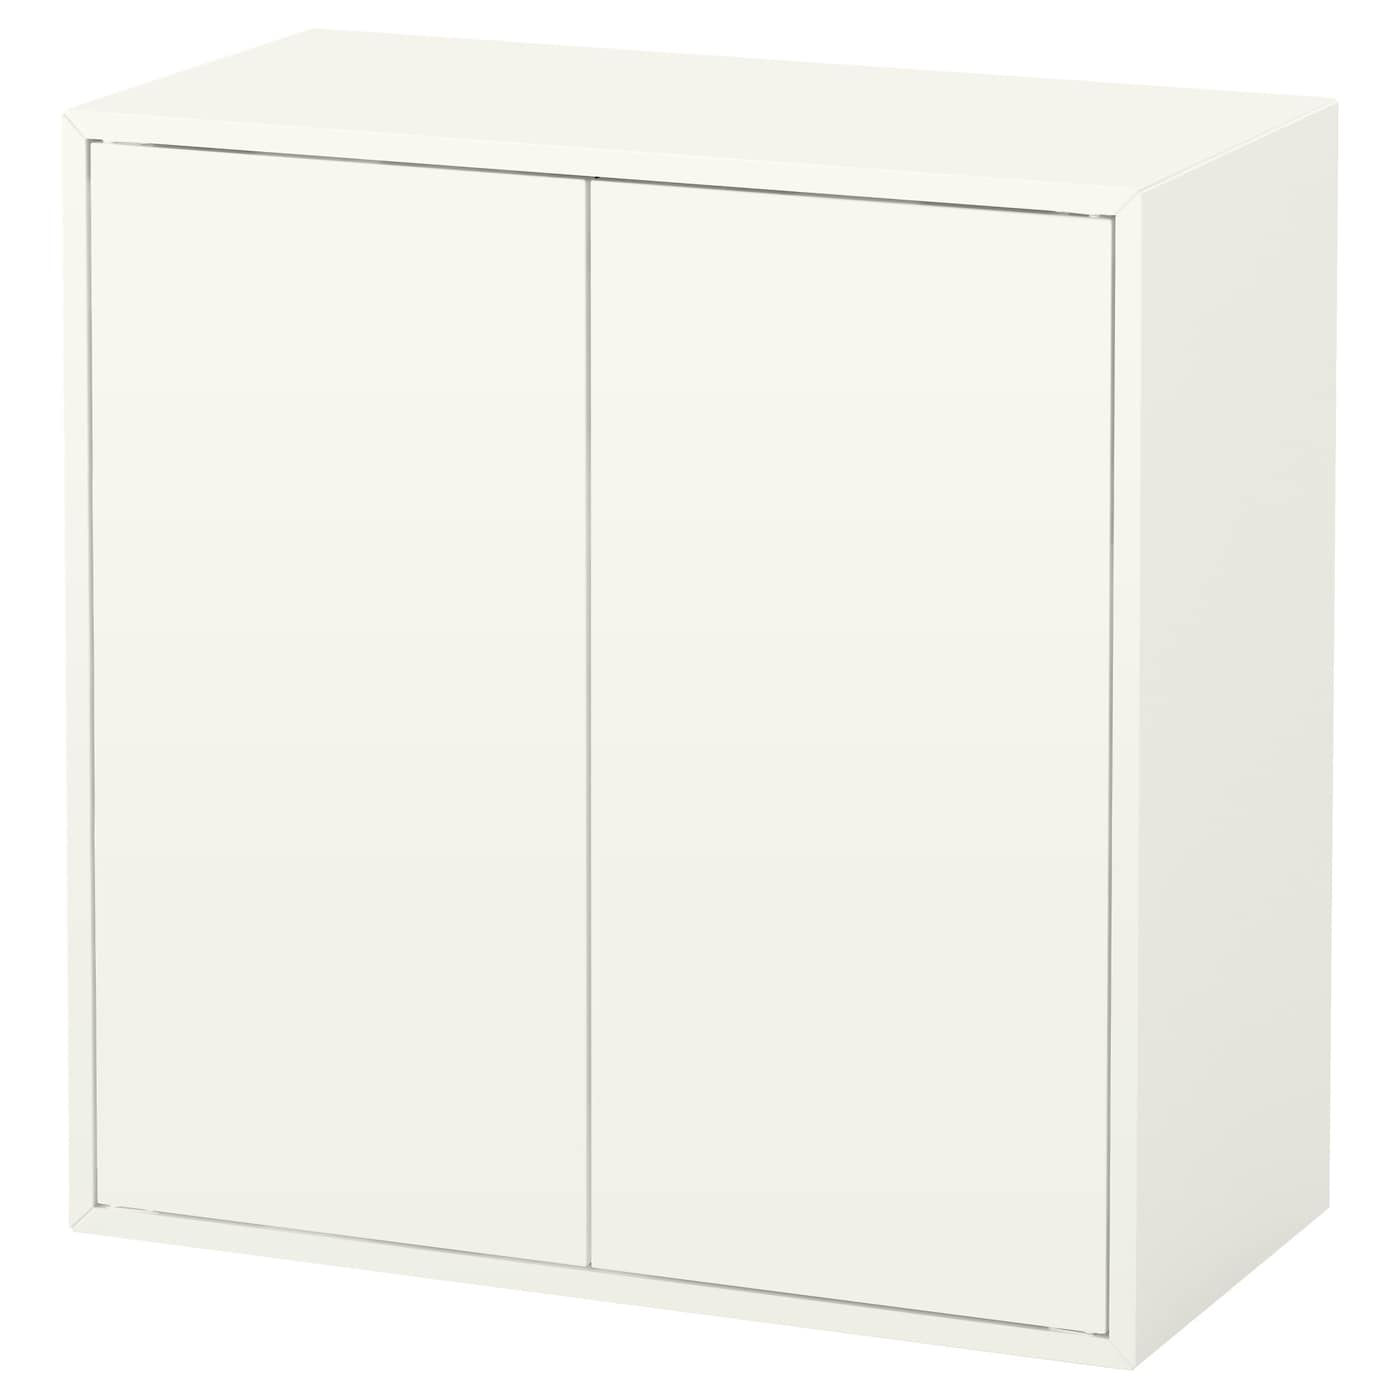 Eket cabinet w 2 doors and 1 shelf white 70x35x70 cm ikea for Couchtisch 50 x 70